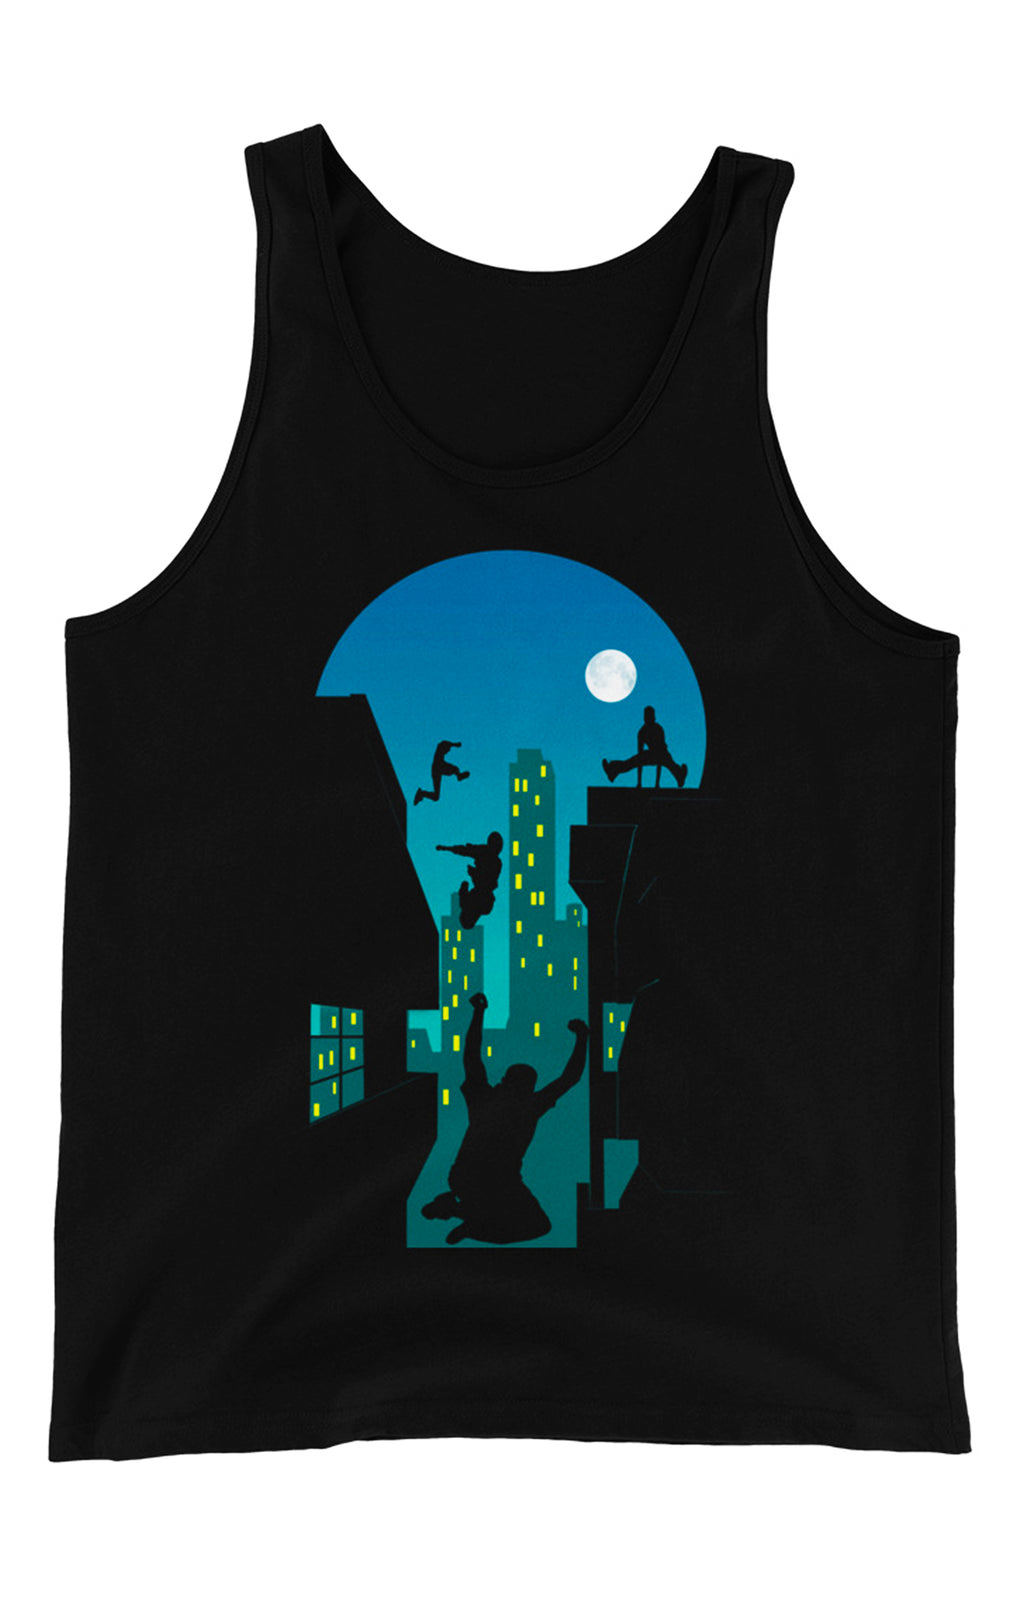 Night warriors Tank Top